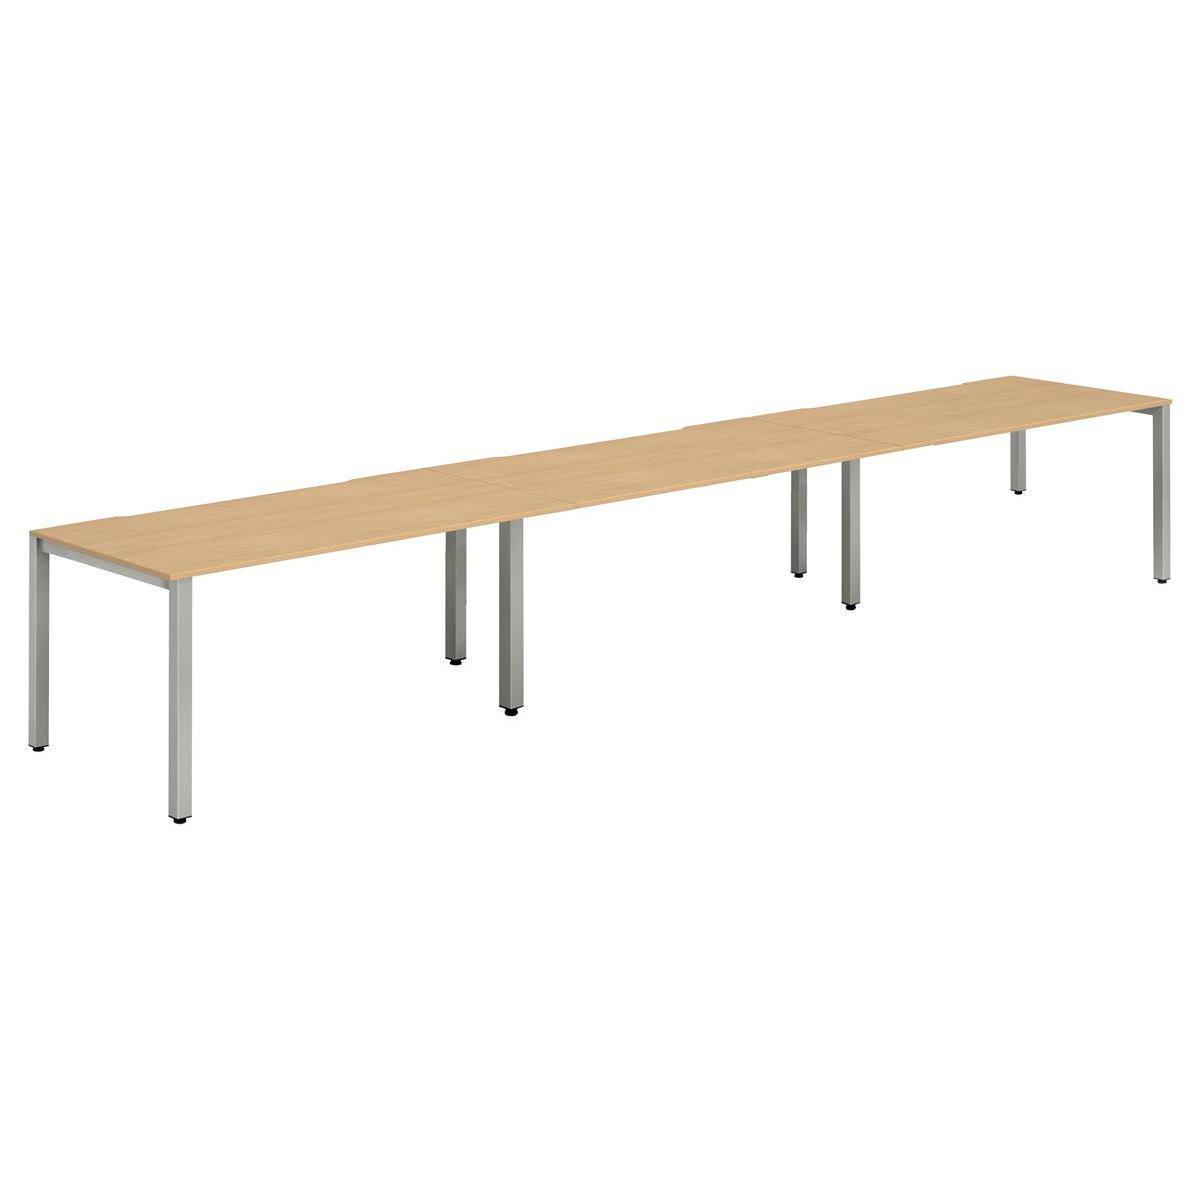 Trexus Bench Desk 3 Person Side to Side Configuration Silver Leg 3600x800mm Beech Ref BE418